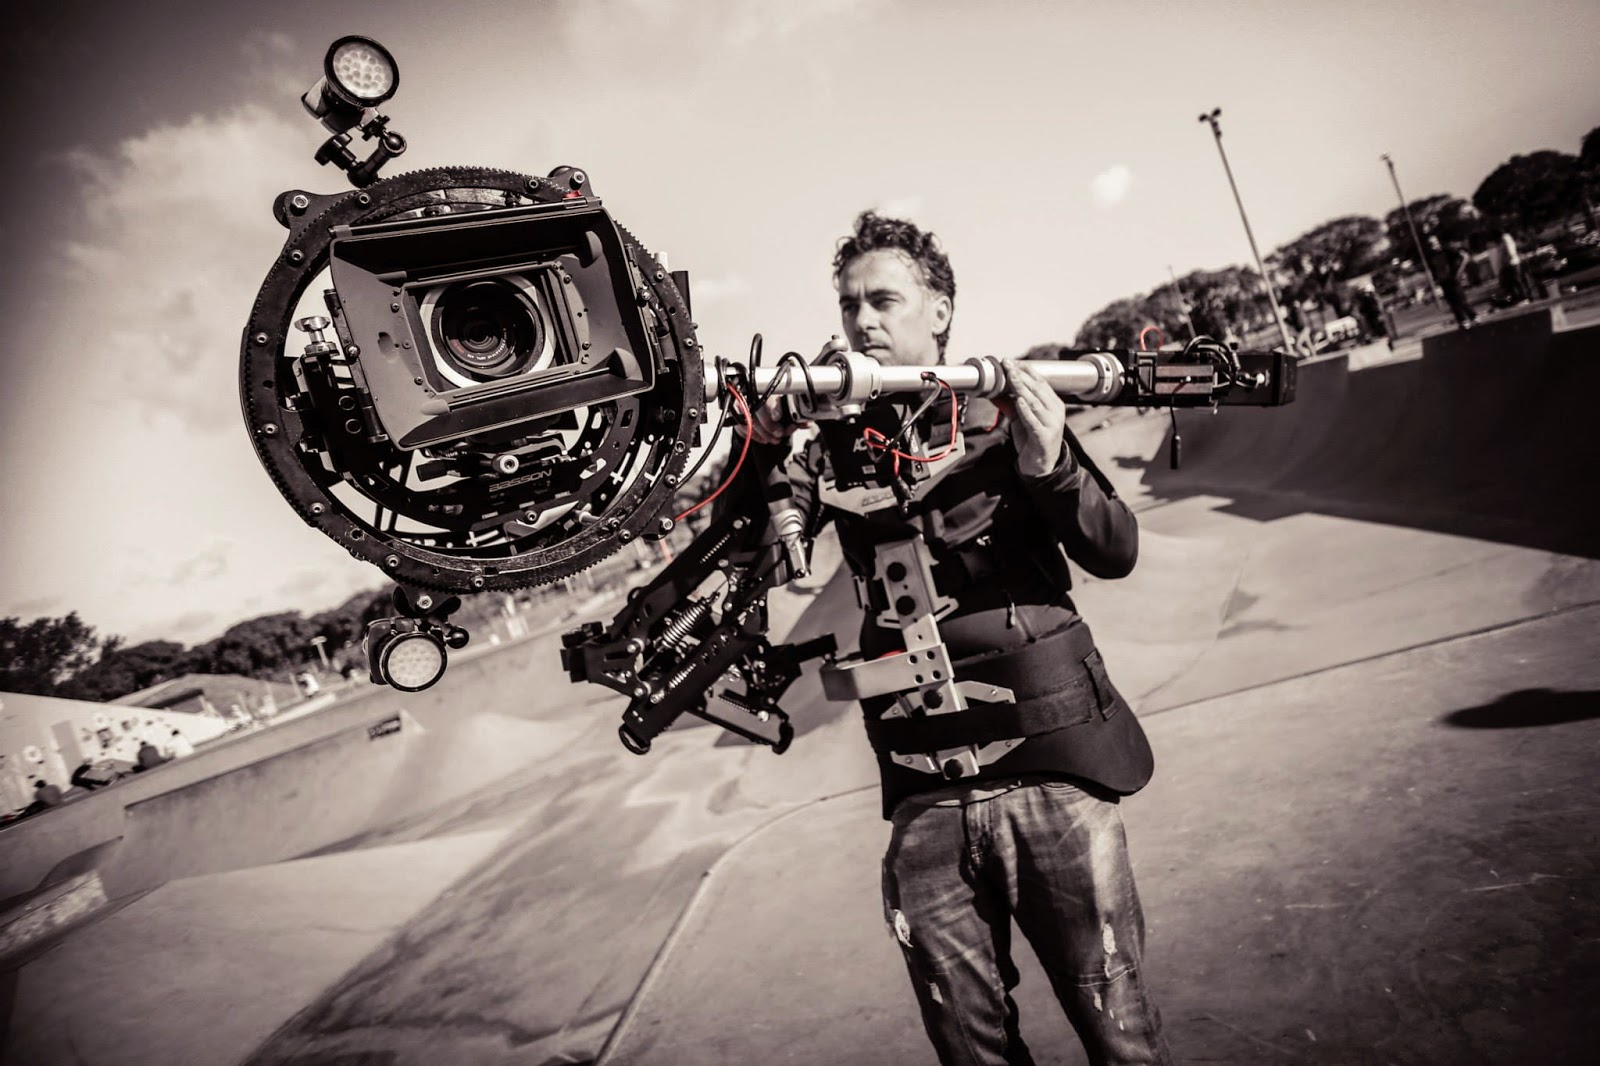 Camera Dslr Camera Steadicam best steadicam for dslr the new 8 axis hybrid camera stabilizer made by basson steady